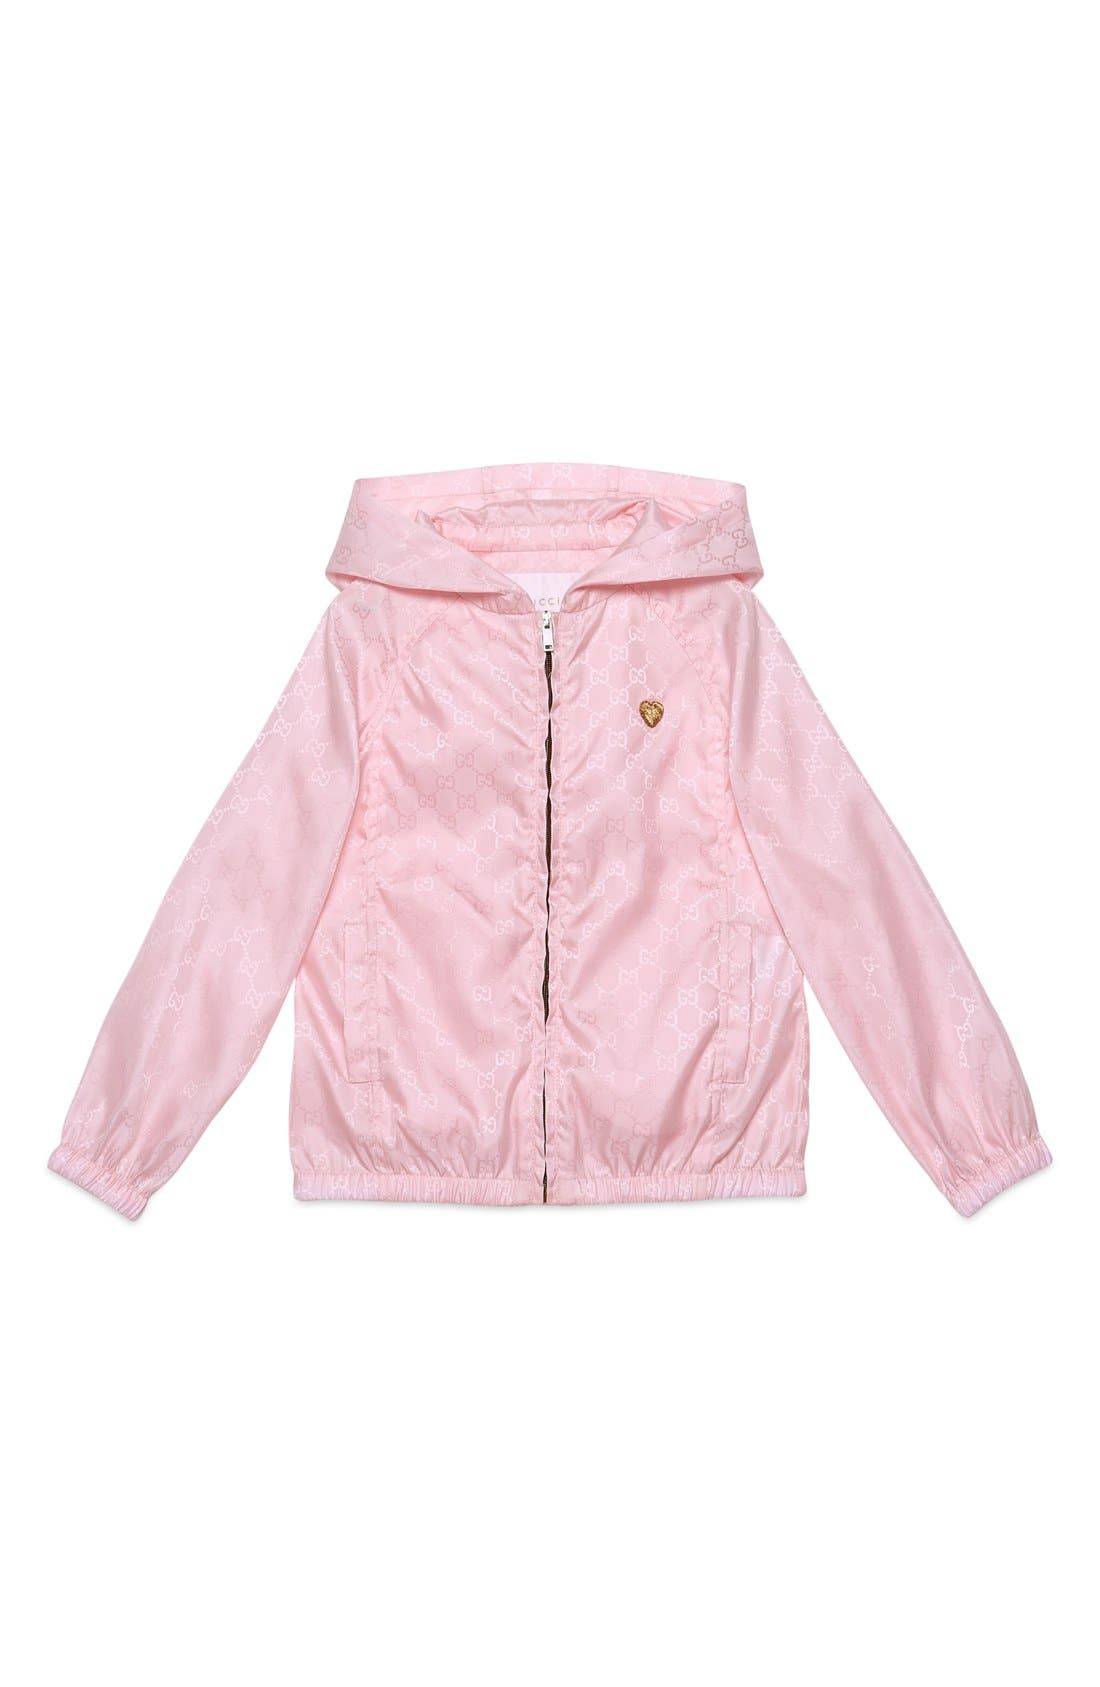 Gucci Logo Jacquard Nylon Jacket (Little Girls & Big Girls)